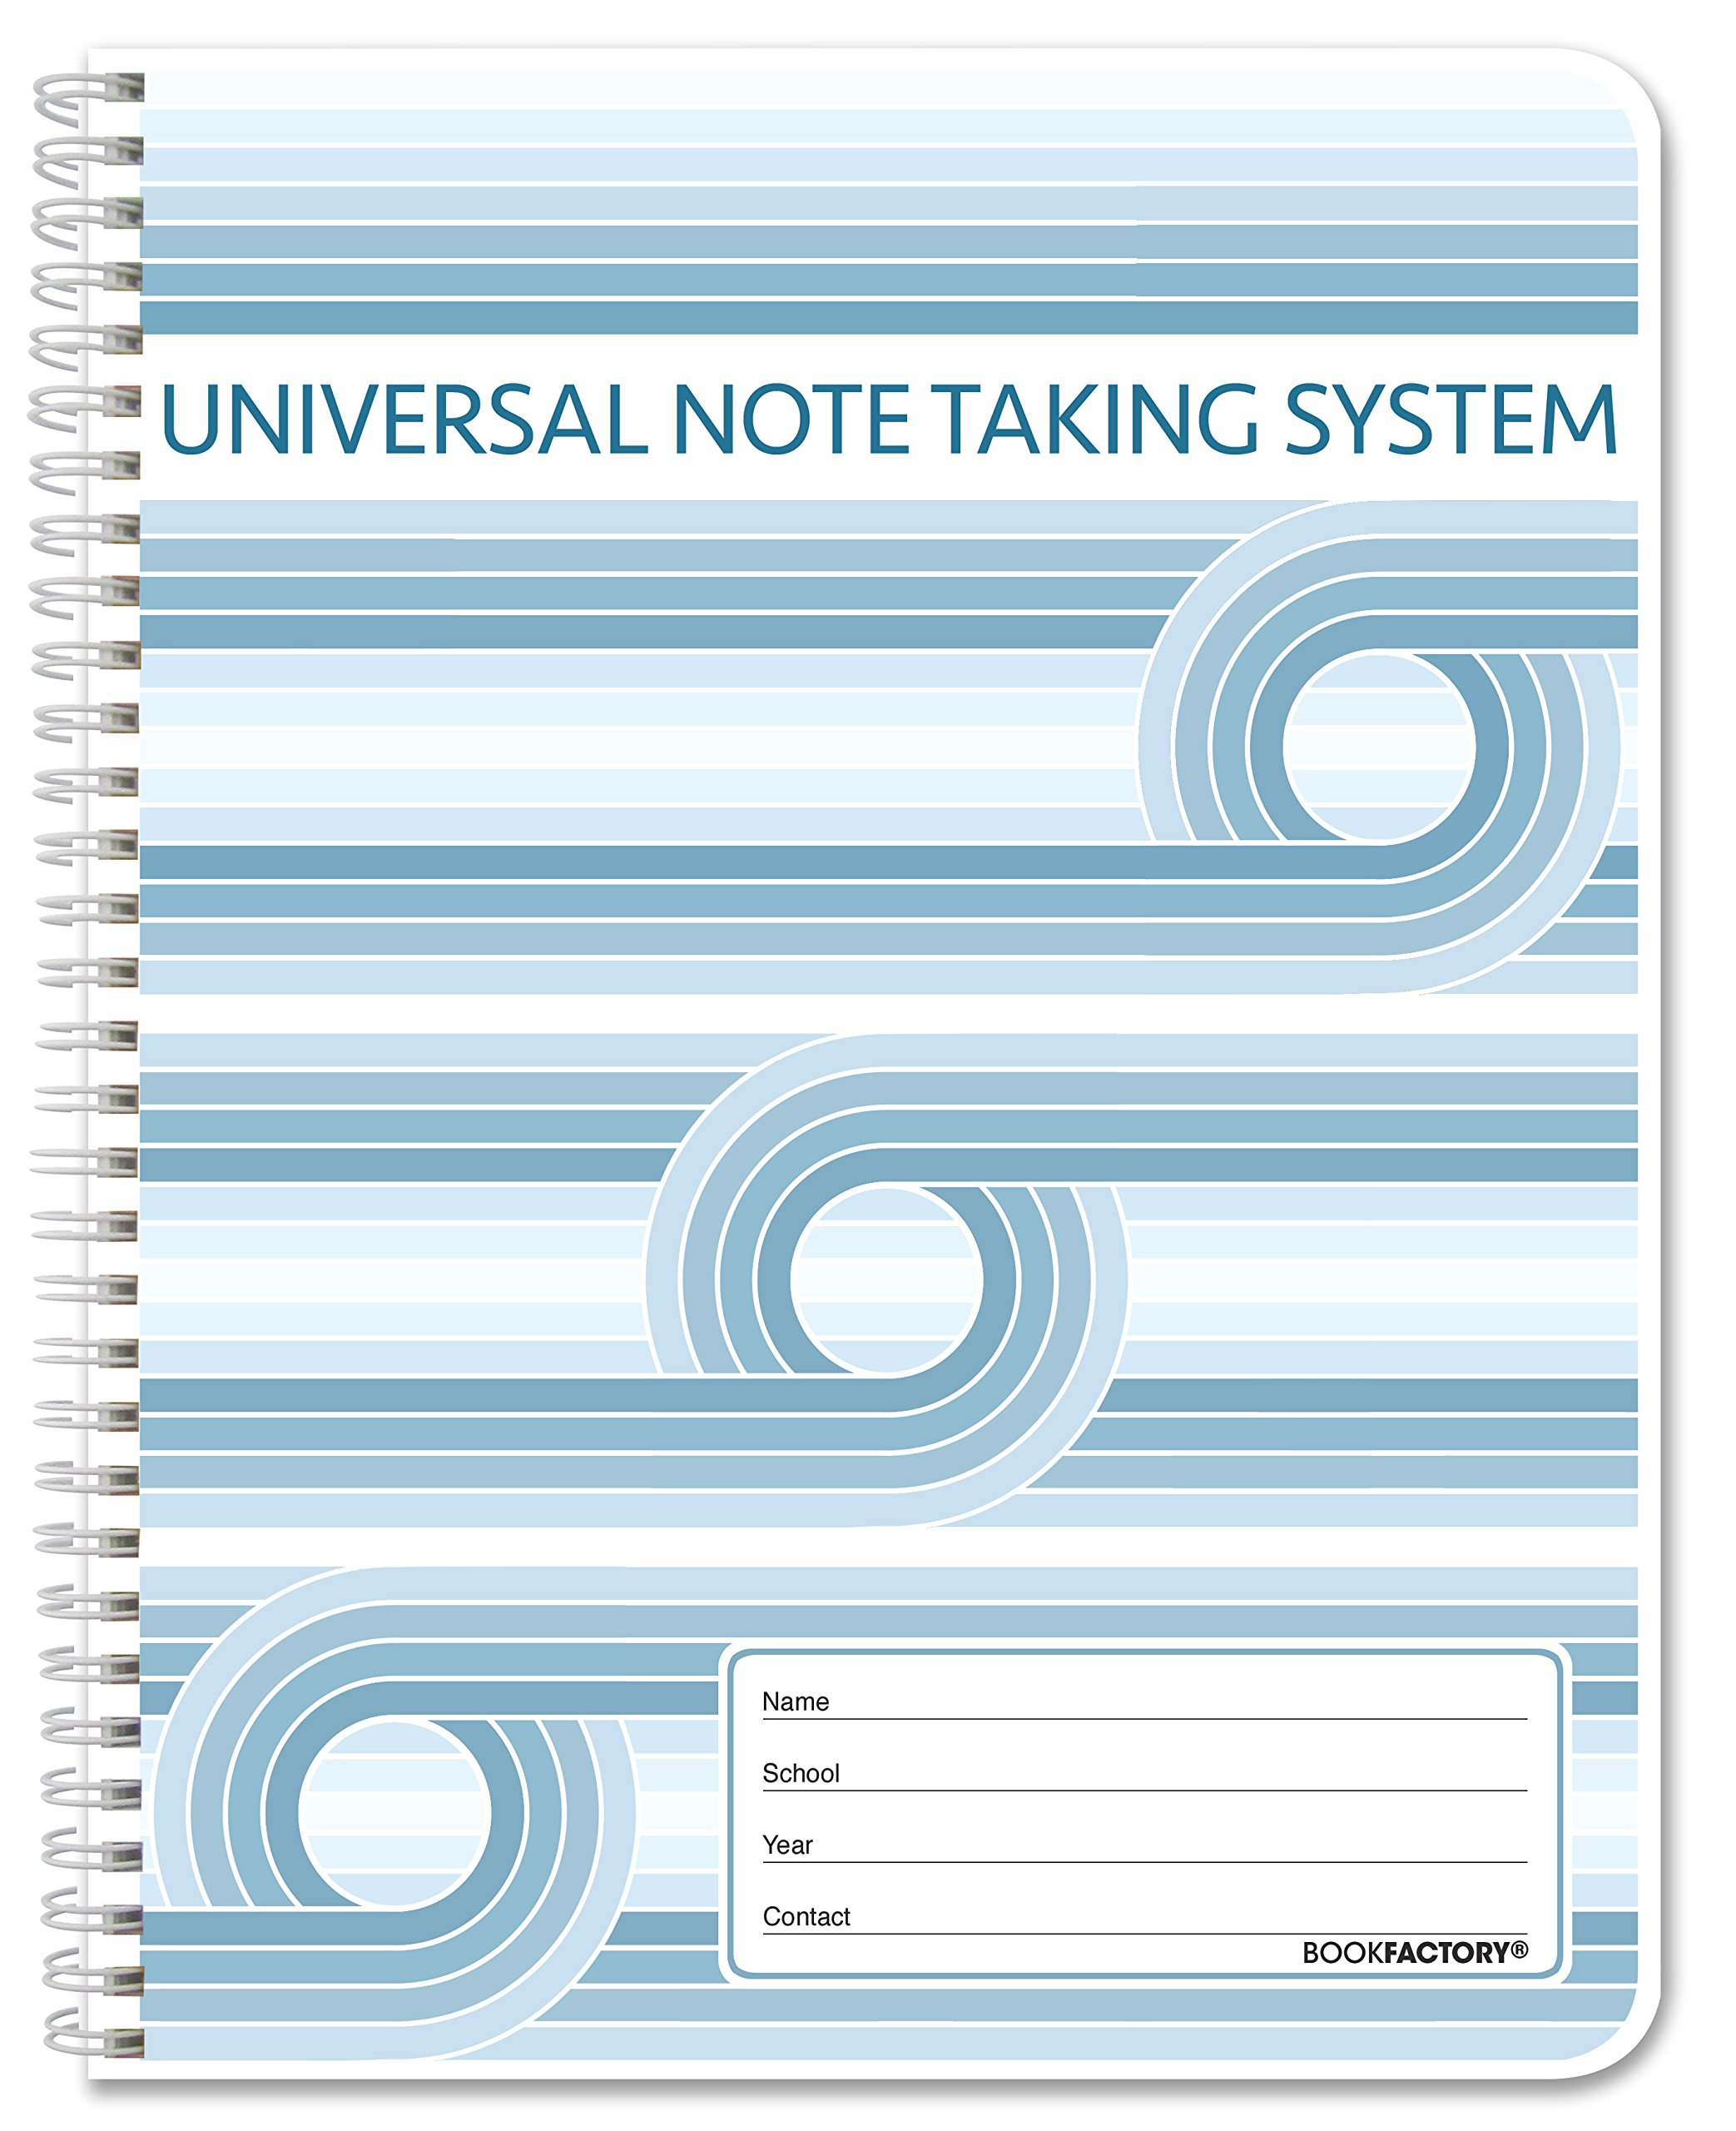 BookFactory Universal Note Taking System (Cornell Notes)/NoteTaking Notebook - 120 Pages, 8 1/2'' x 11'' - Wire-O (LOG-120-7CW-A(Universal-Note))